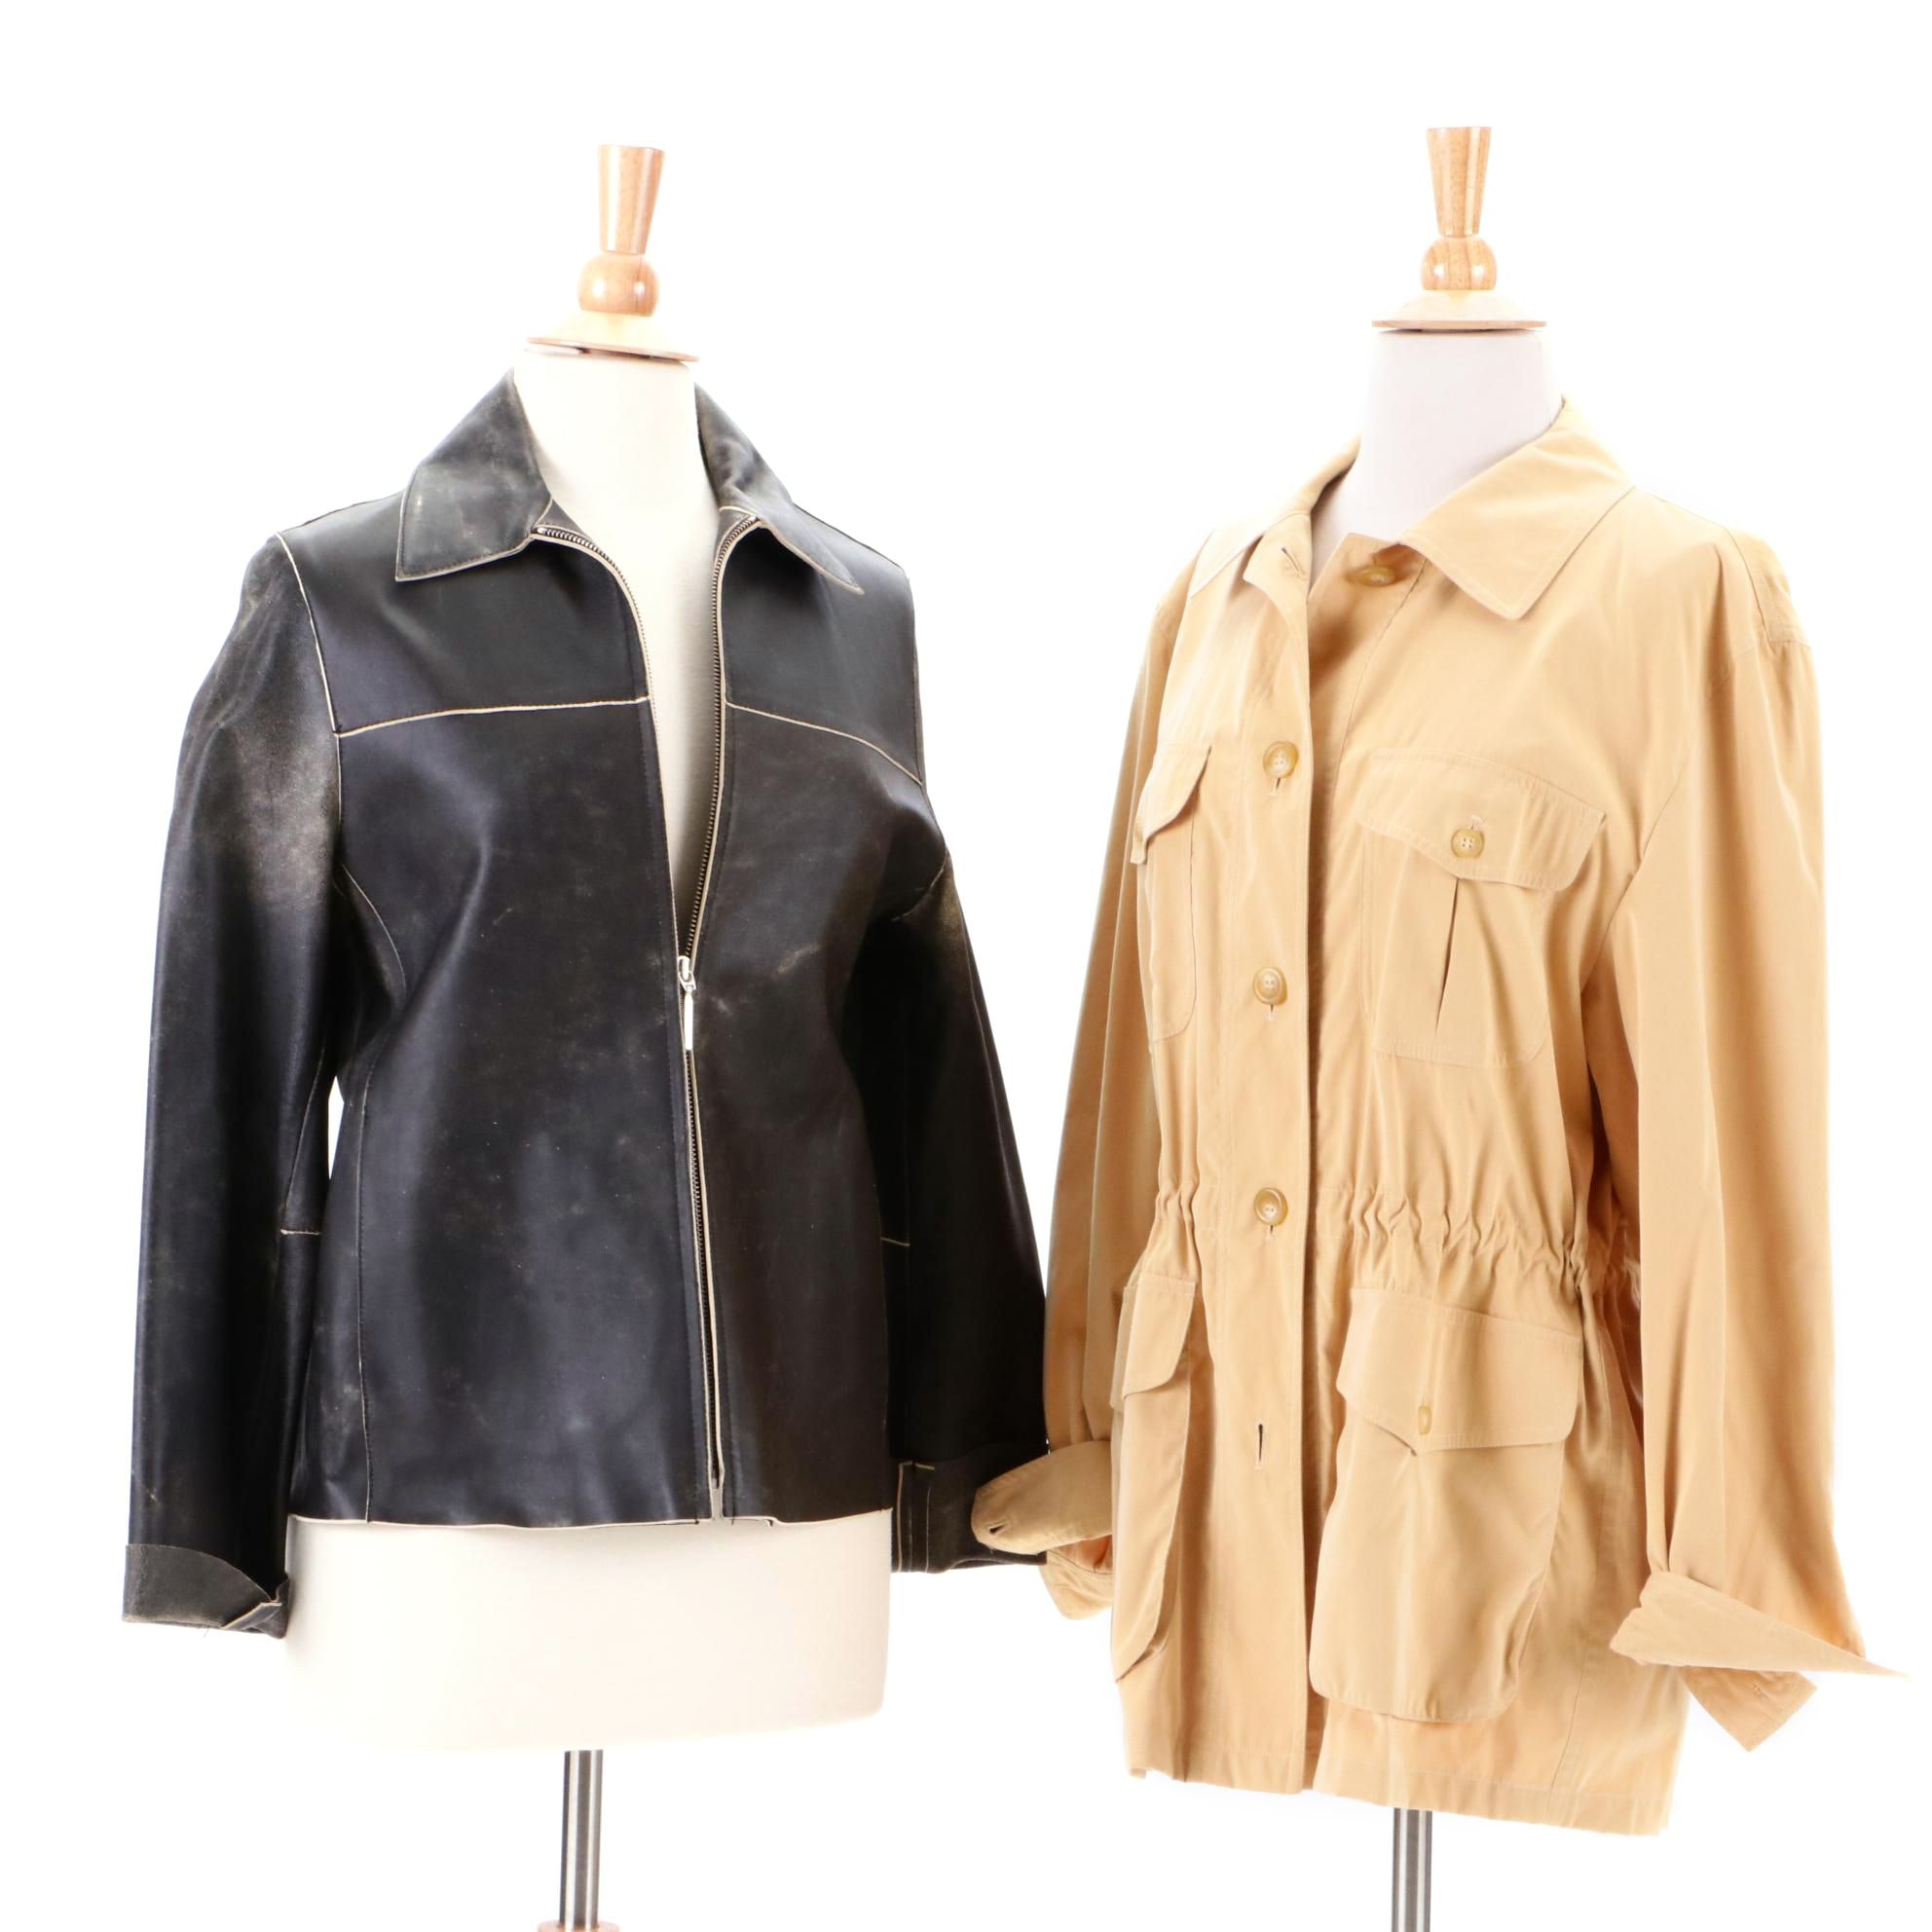 Valstar Buttercream Yellow Microfiber Jacket and Rizal Distressed Leather Jacket